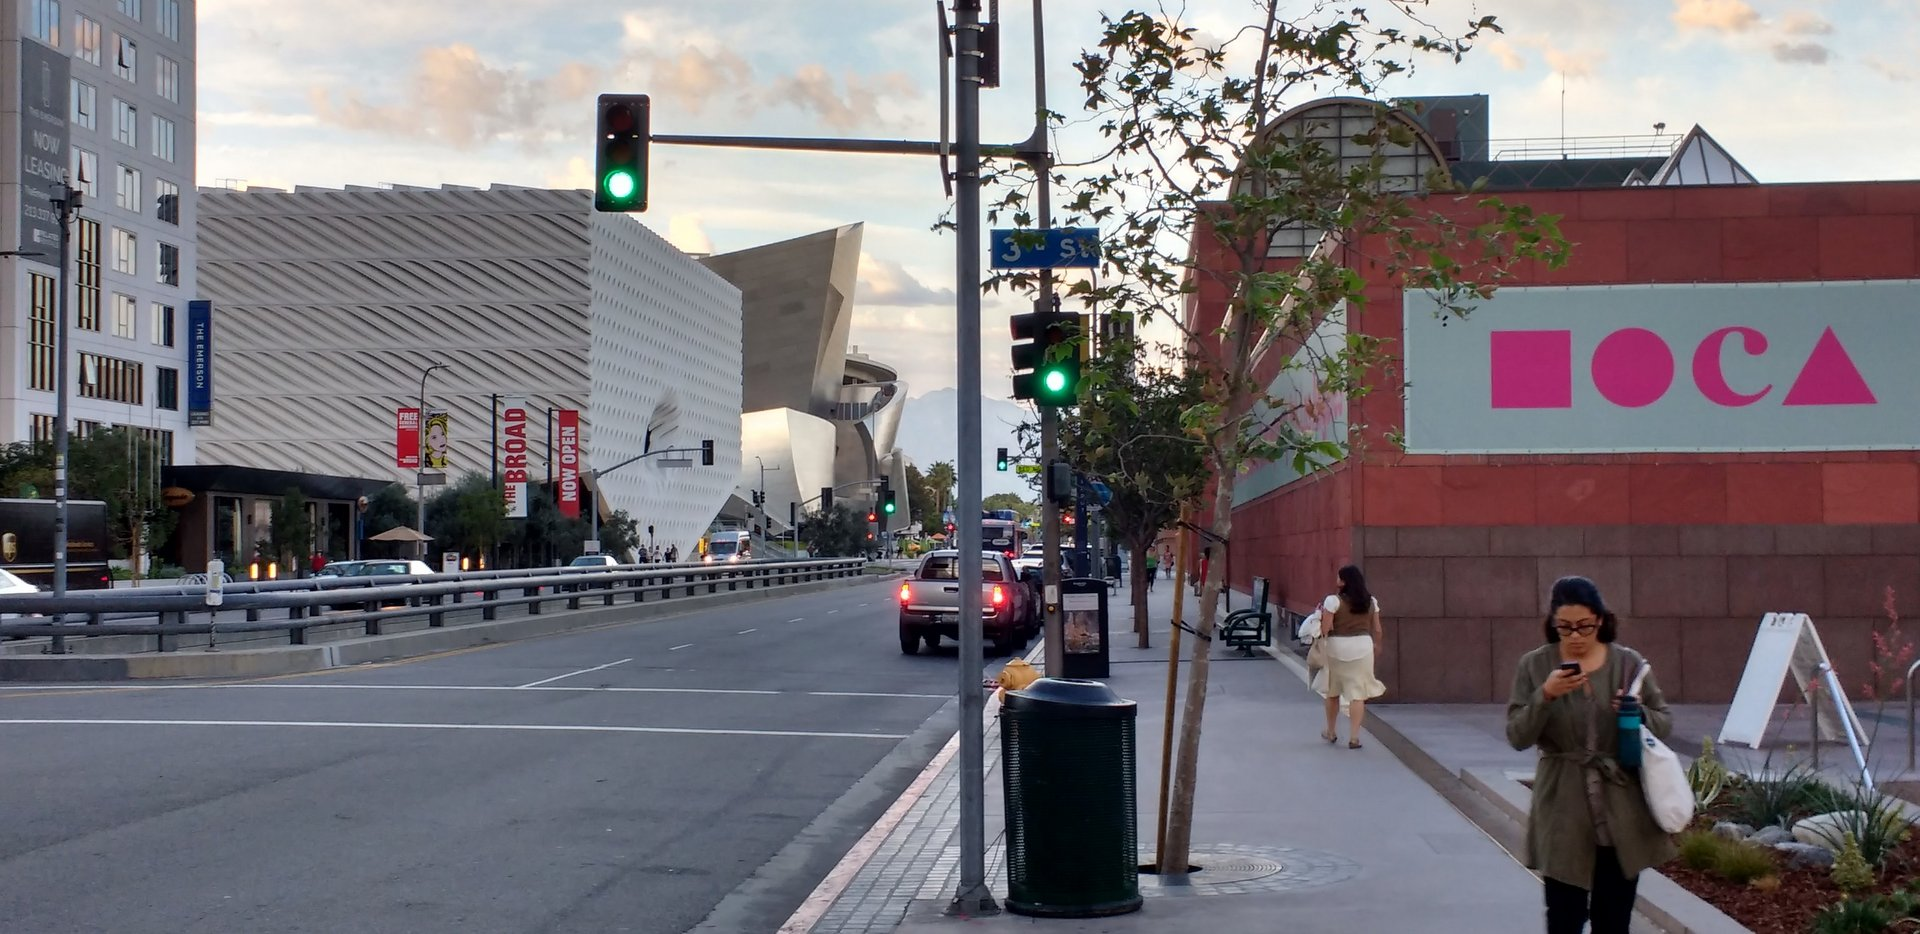 Grand Avenue in Downtown Los Angeles featuring MOCA, The Broad Museum, and Disney Hall